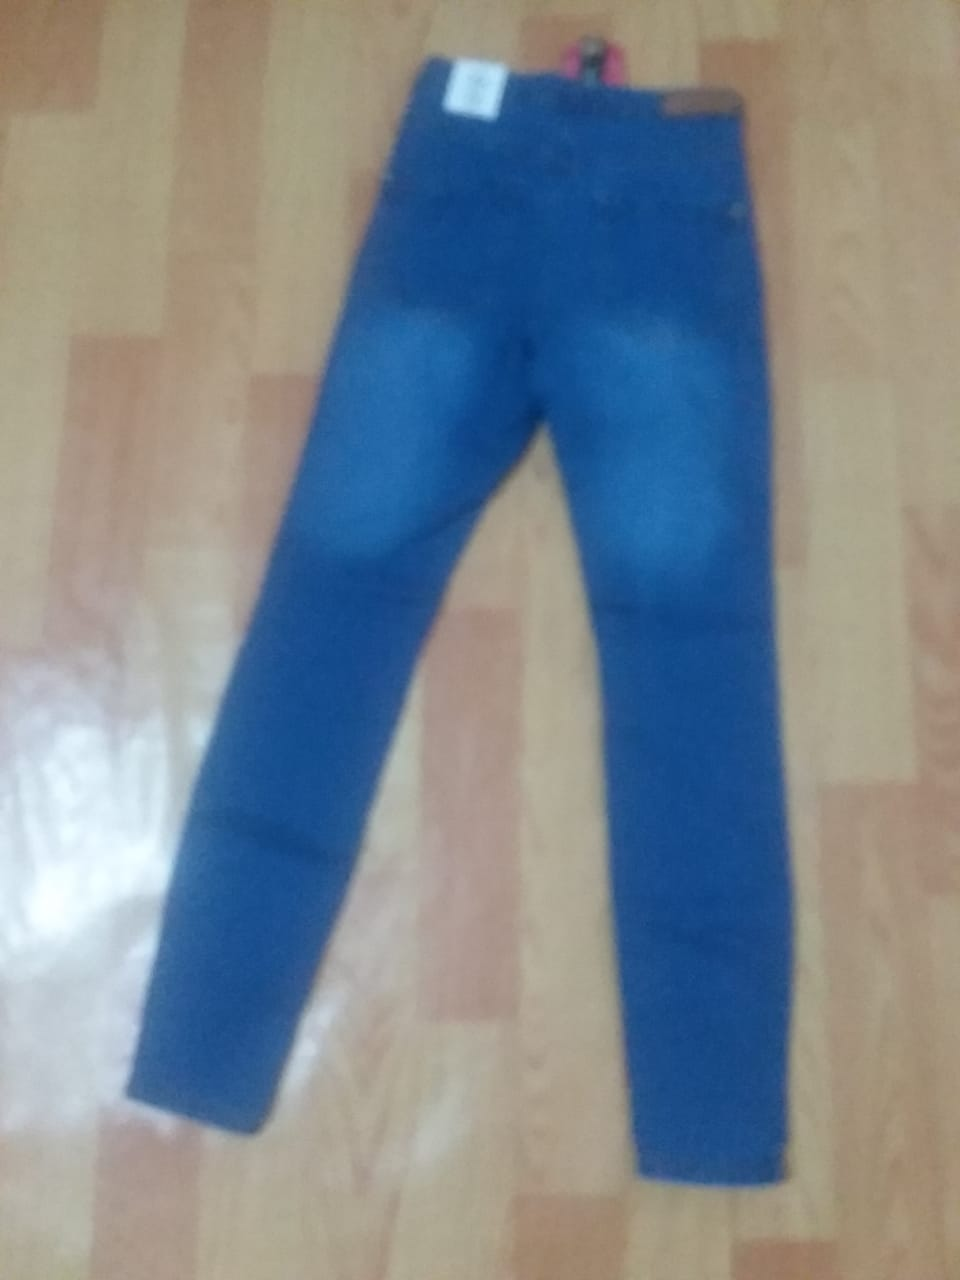 STOCK OF 15000 pcs LADIES DENIM JEGGINGS pakistan jan 22 19